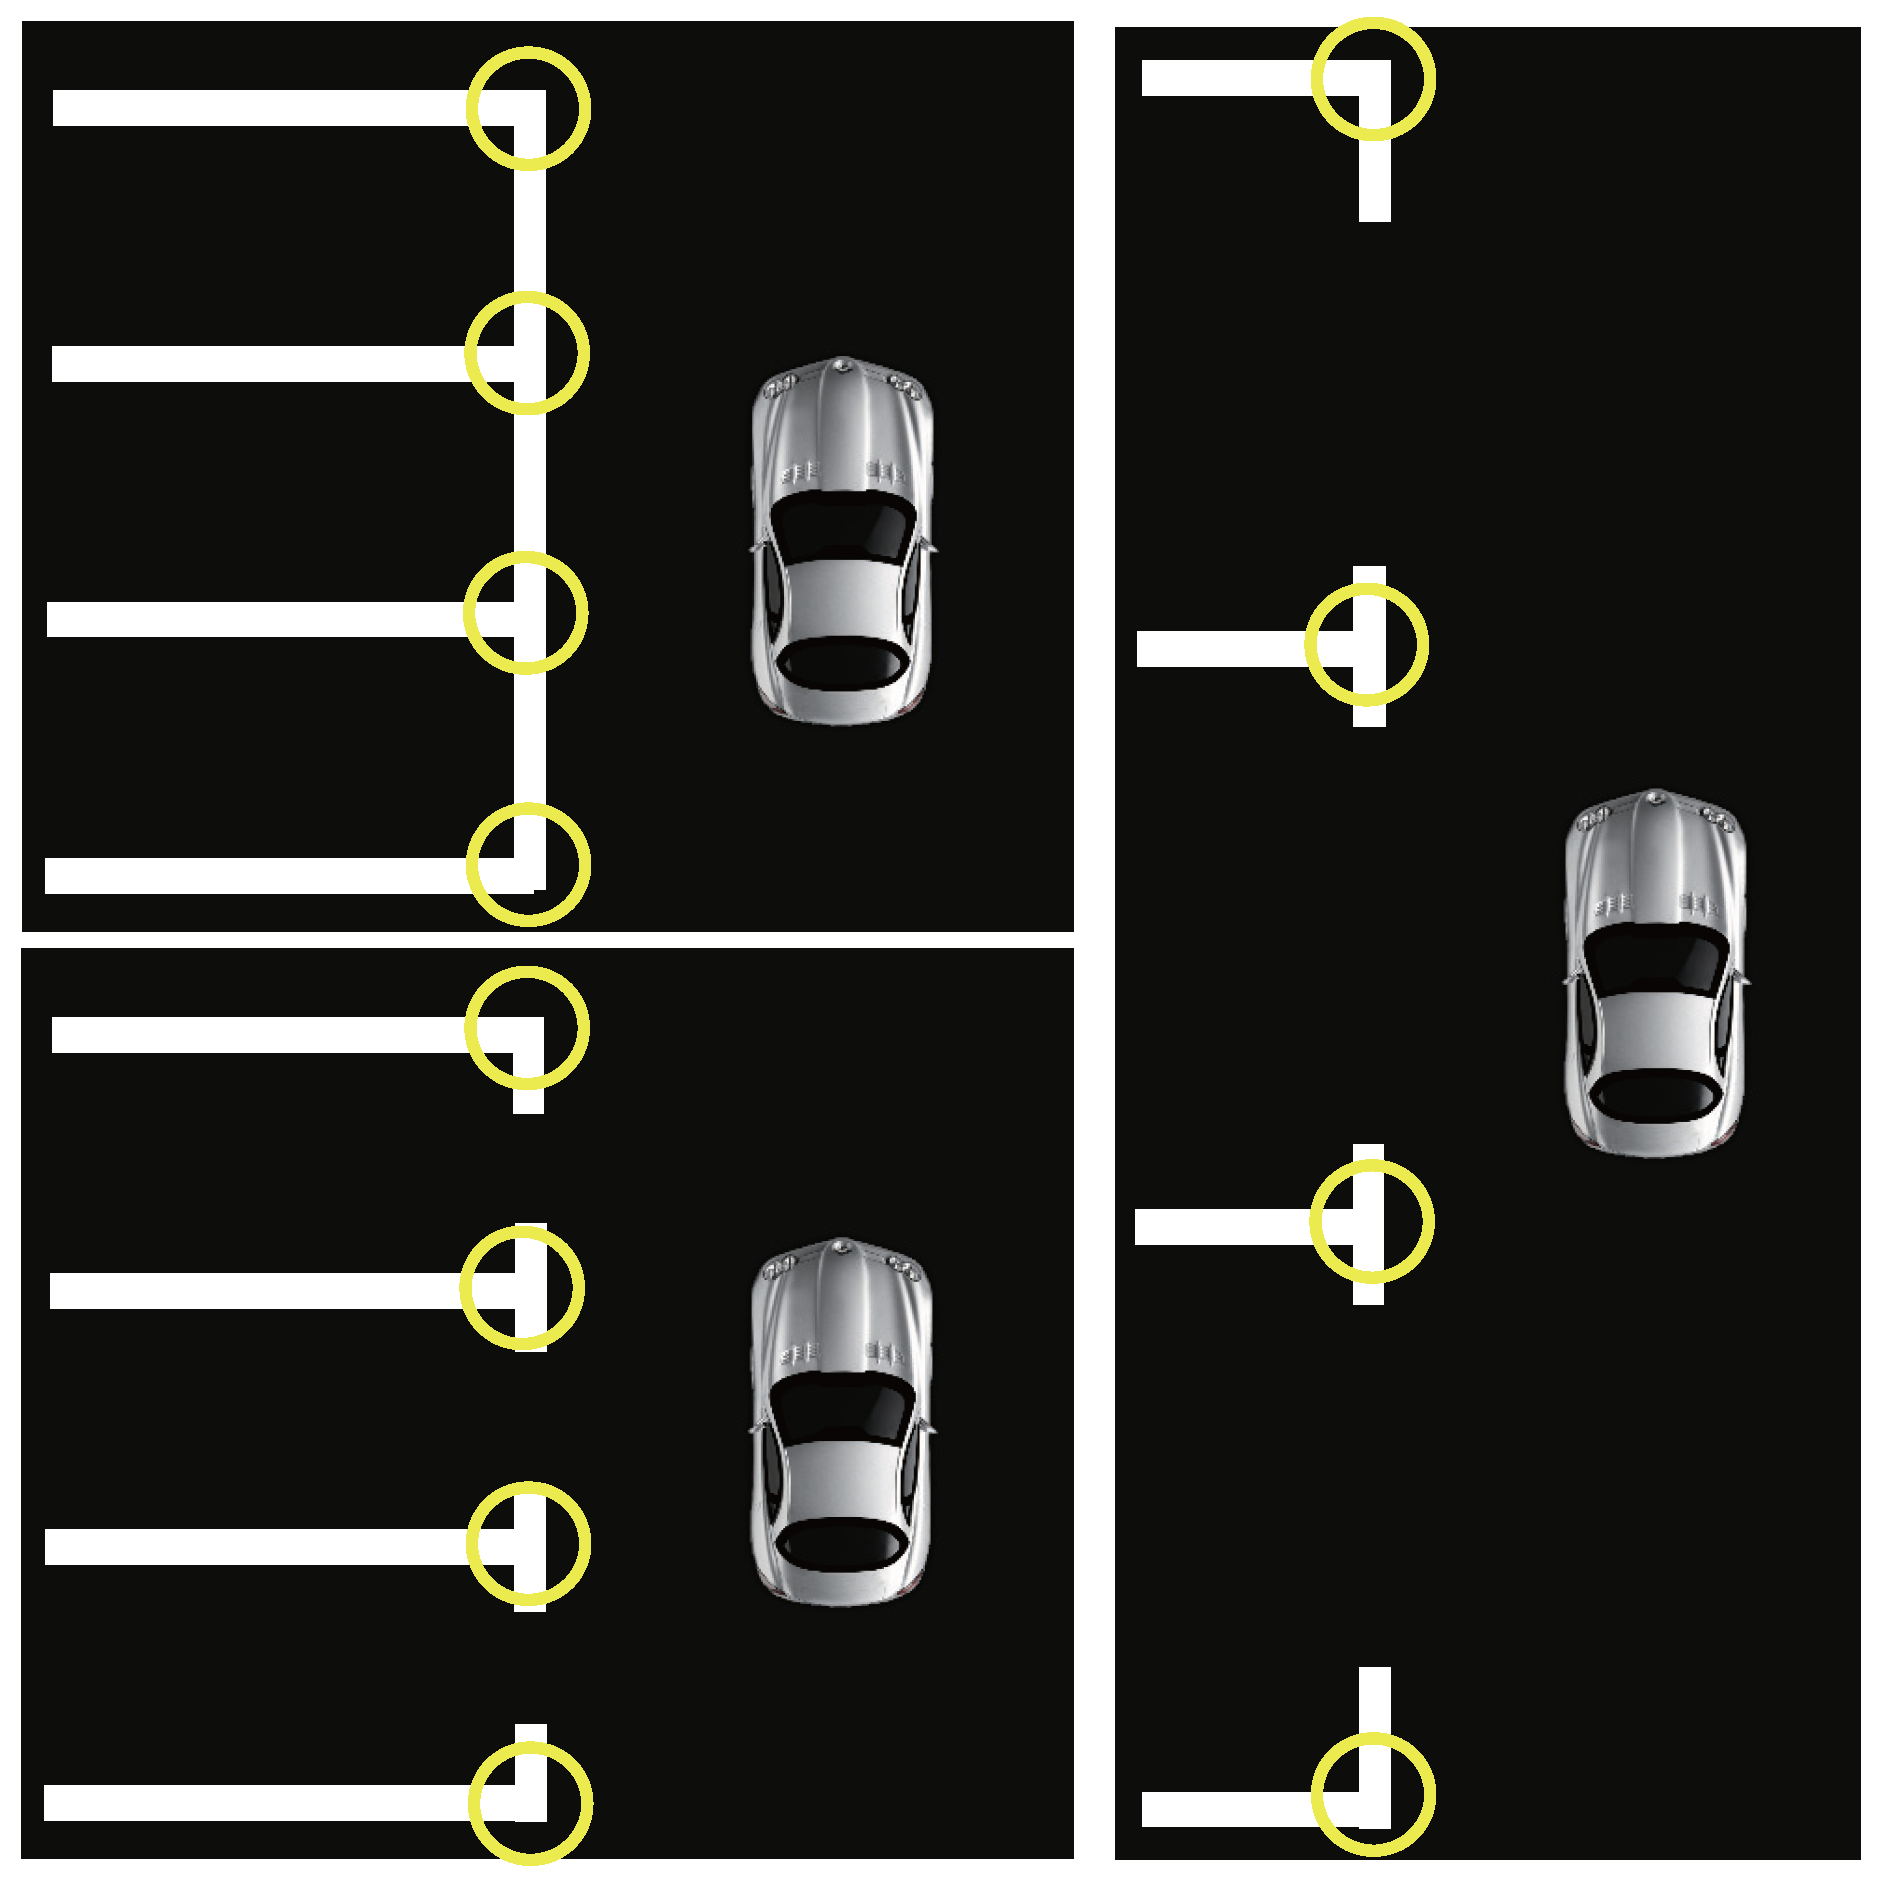 Symmetry | Free Full-Text | Vision-Based Parking-Slot